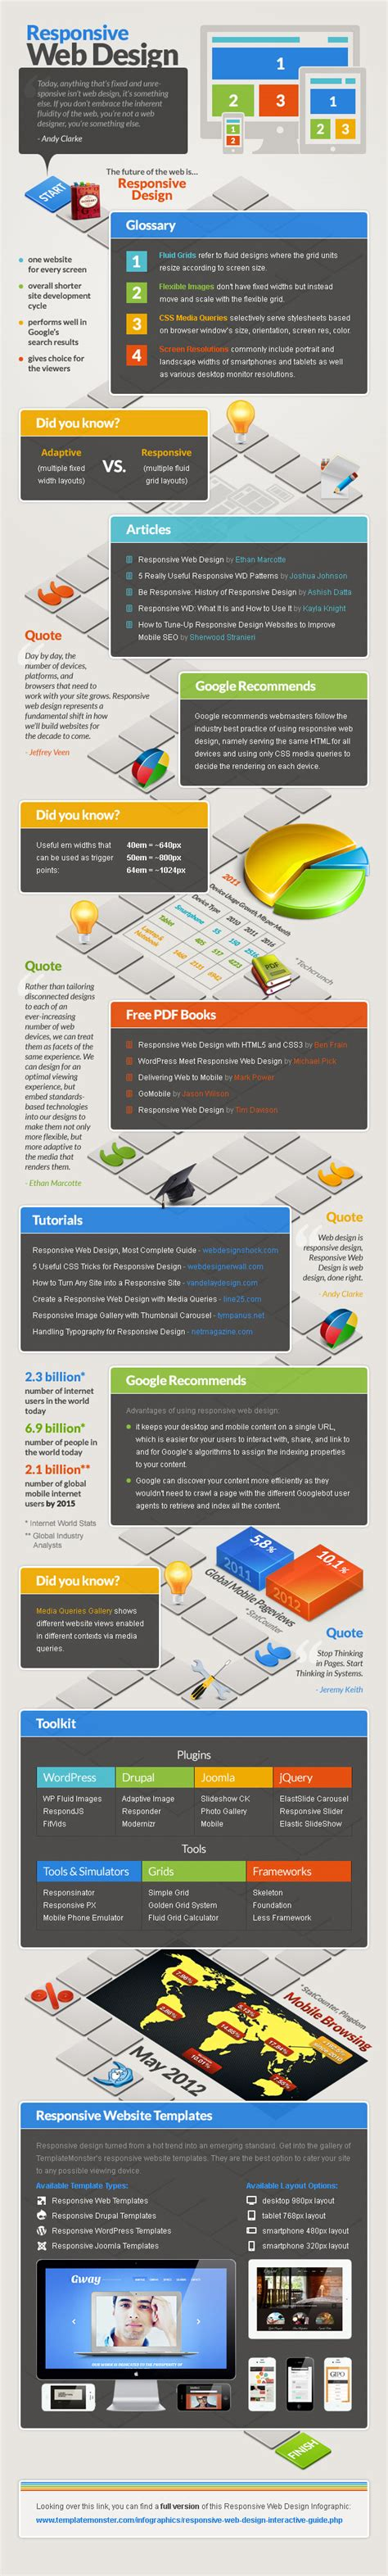 Responsive Vs Adaptive Web Design  Infographics Mania. Autocad Electrical For Mac What Cloud Storage. Low Cost Term Life Insurance Quotes. Payday Loan Assistance State Attorneys Office. St Vincent Nursing School Ceh Training Online. Department Of Veterans Affairs Wiki. Business Financing Bad Credit. Picture Of A Broken Leg How I Fixed My Credit. Entry Level Staff Accountant Alert Bay B C